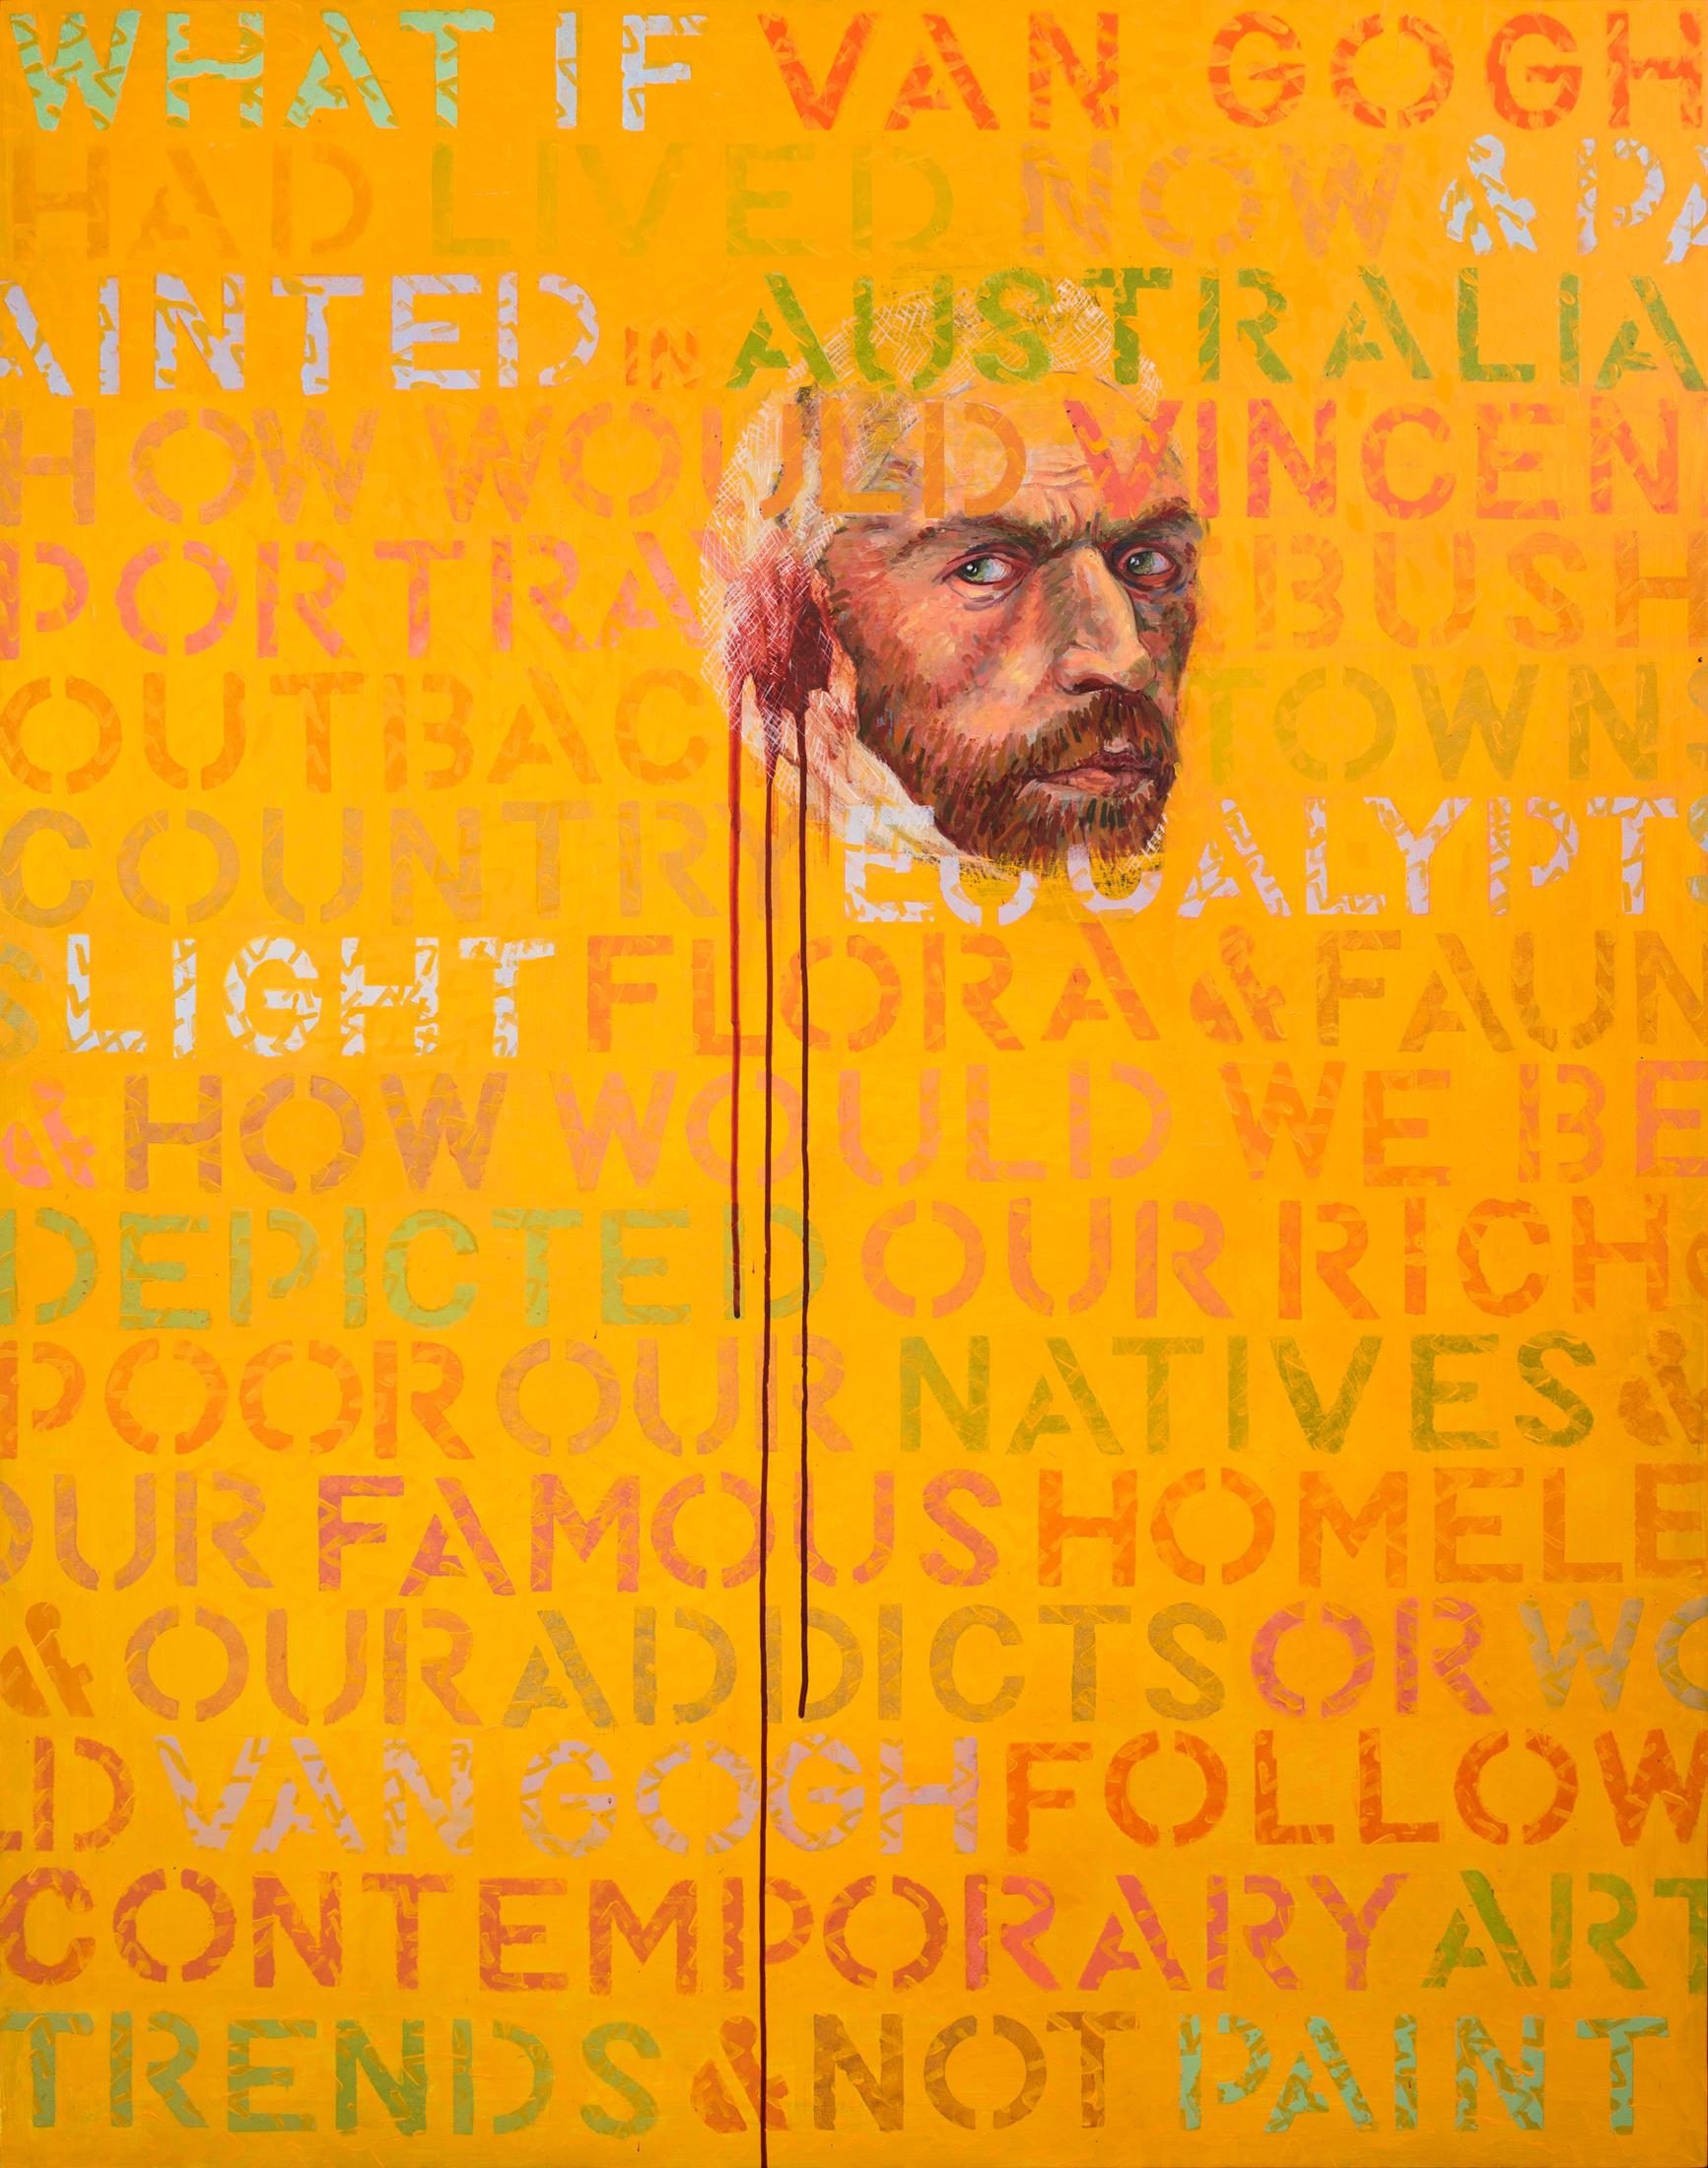 Lesley-Meaney-What-if-Van-Gogh-had-lived-in-Australia-Acrylic-on-board-110cmW-x-140cmH.jpg